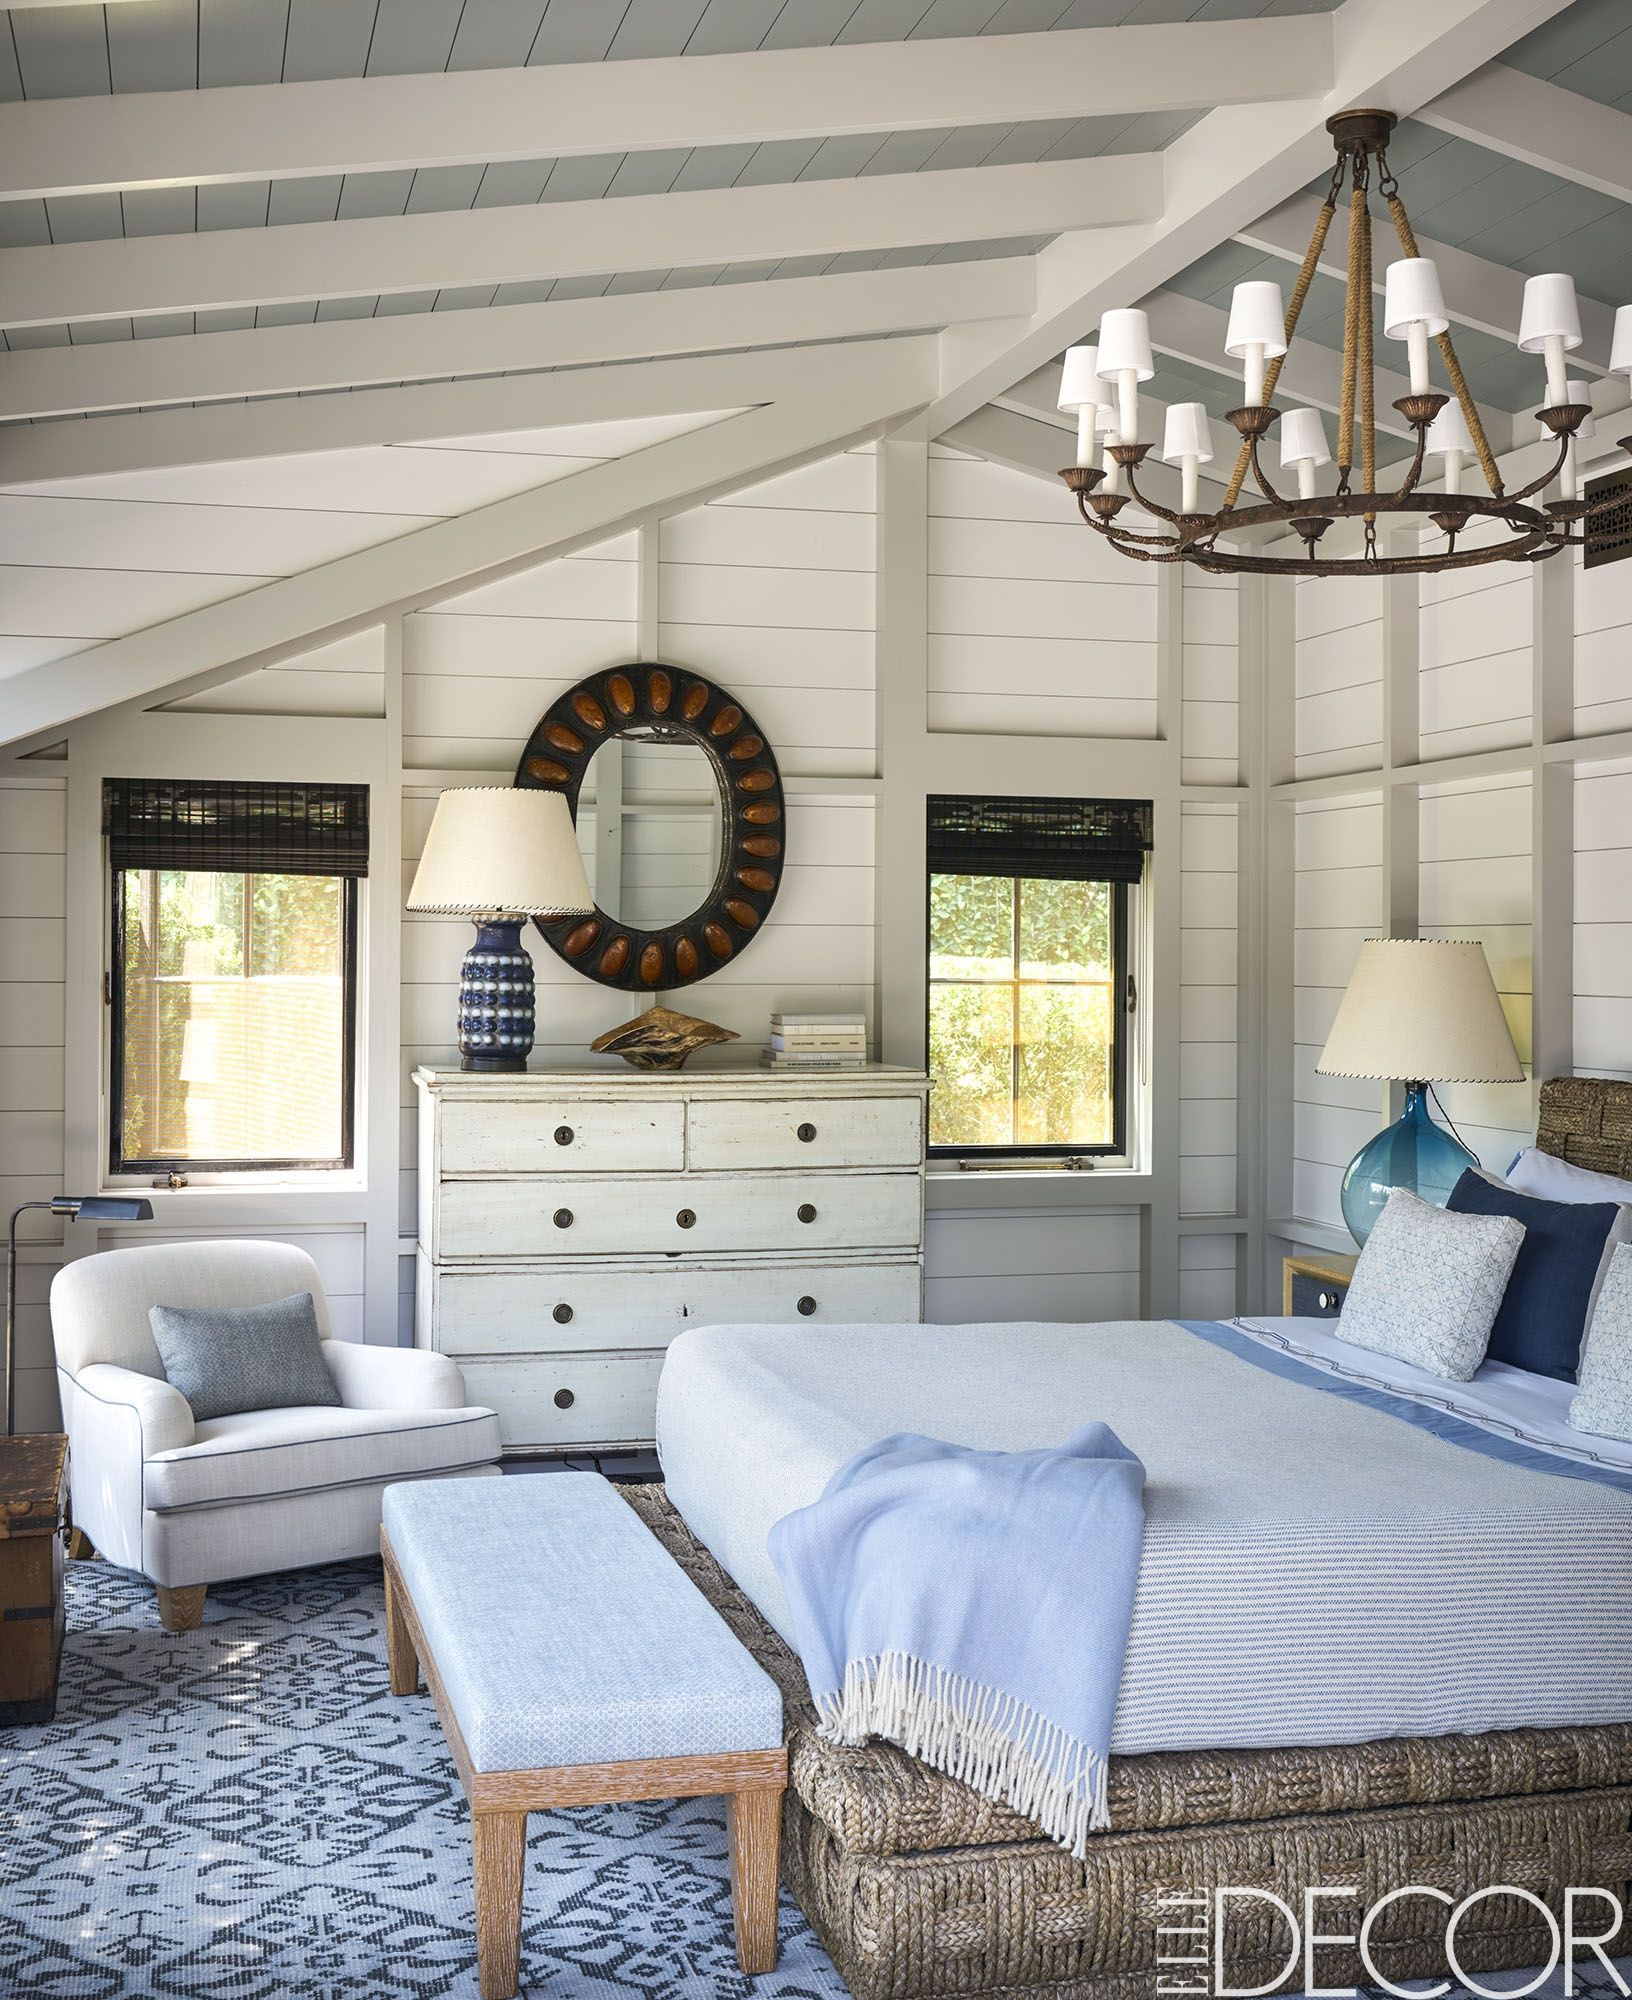 33 Coastal Home Decor Ideas - Rooms with Coastal Style